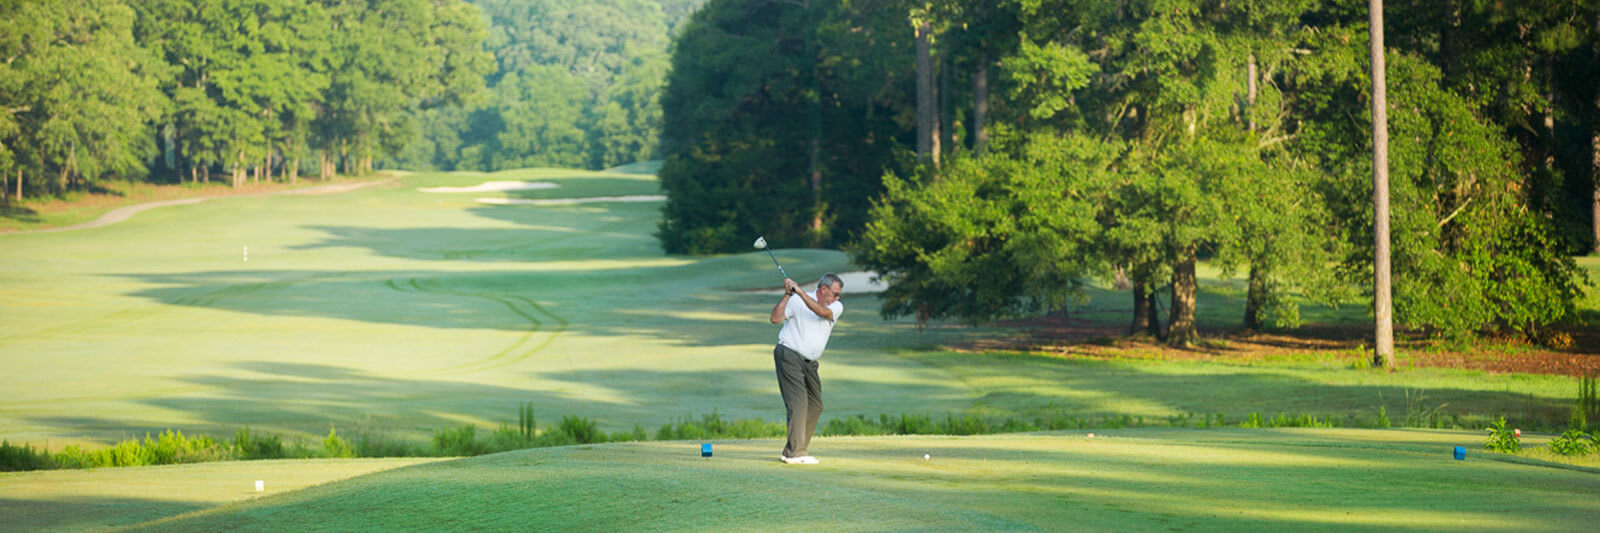 Lake-Blackshear-Golf-County-Club-Resort-Georgia-Golf-Golf-Packages-1